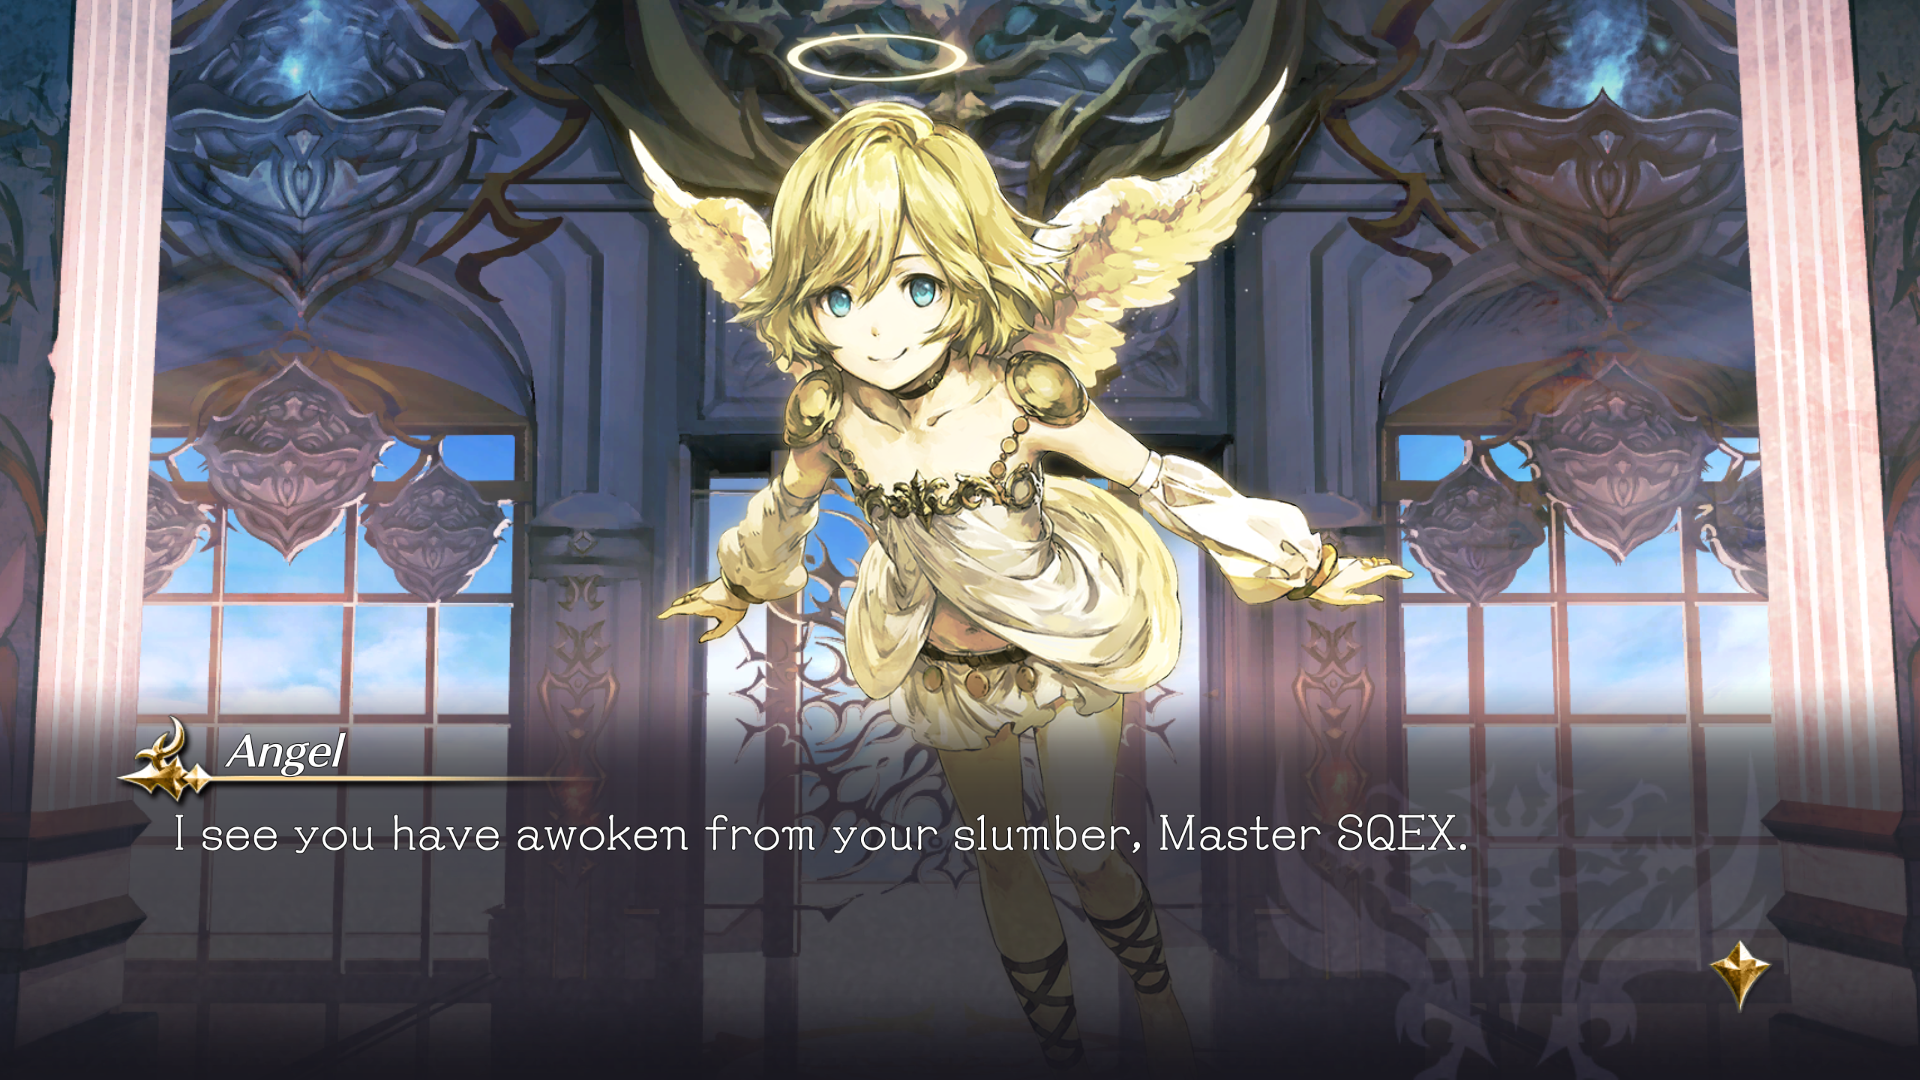 Gameplay screenshot of Actraiser Renaissance showing the Angel and dialogue text.